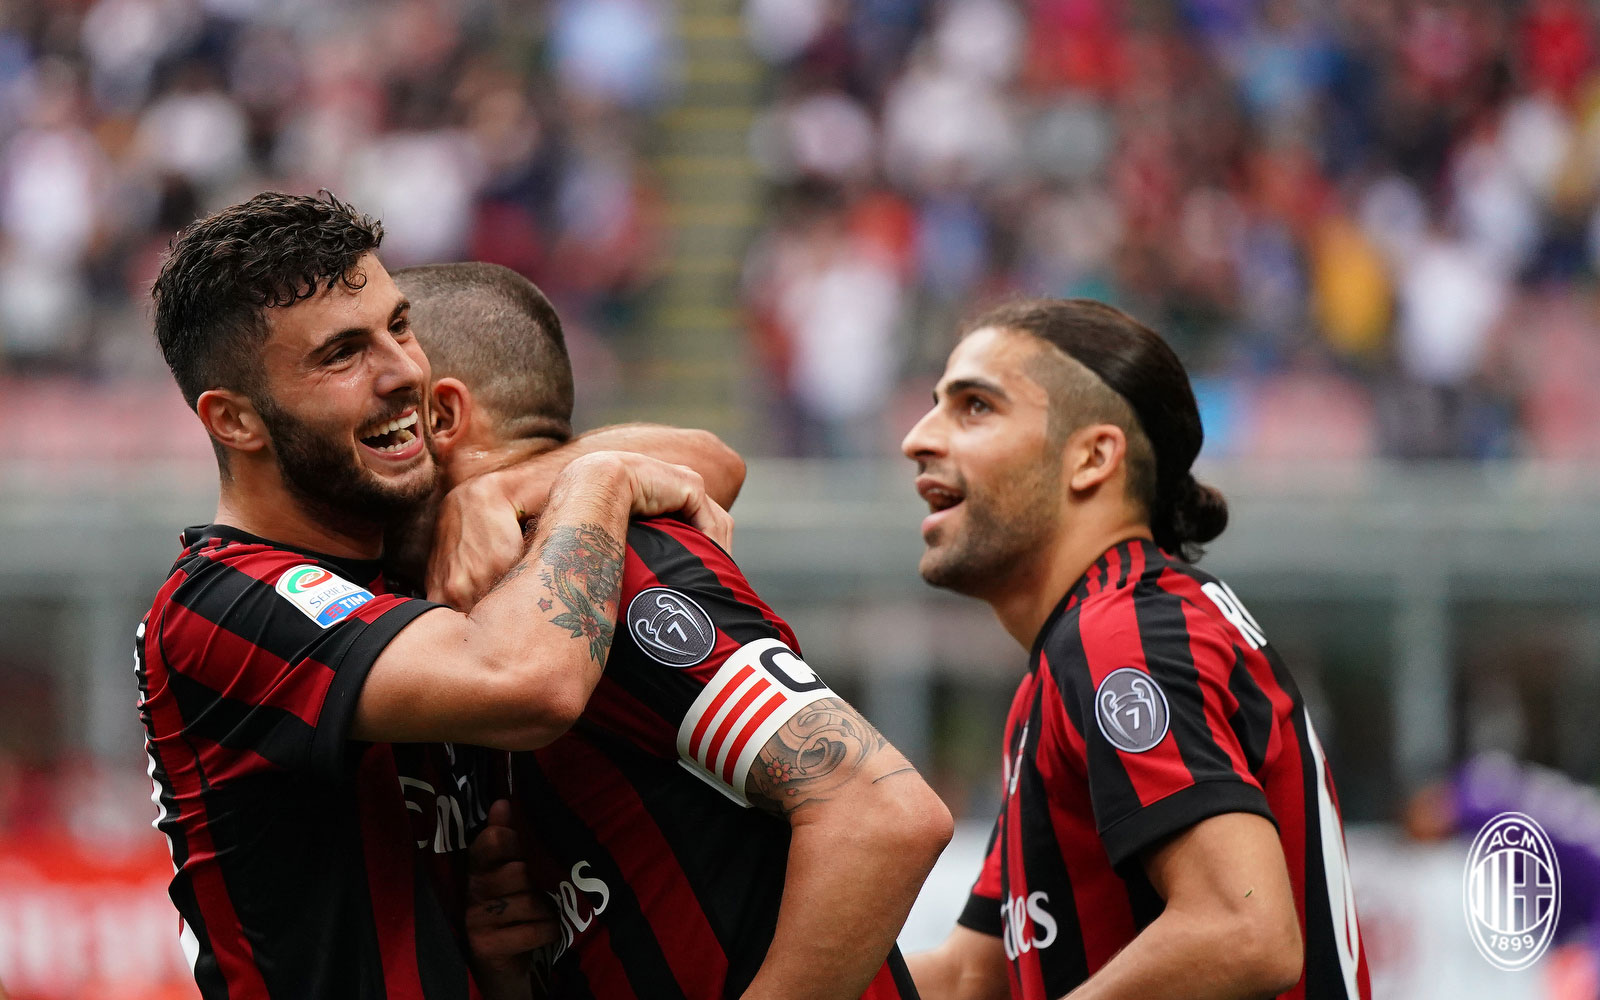 Patrick Cutrone, Leonardo Bonucci and Ricardo Rodriguez celebrating during Milan-Fiorentina at Stadio San Siro on May 20, 2018. (@acmilan.com)